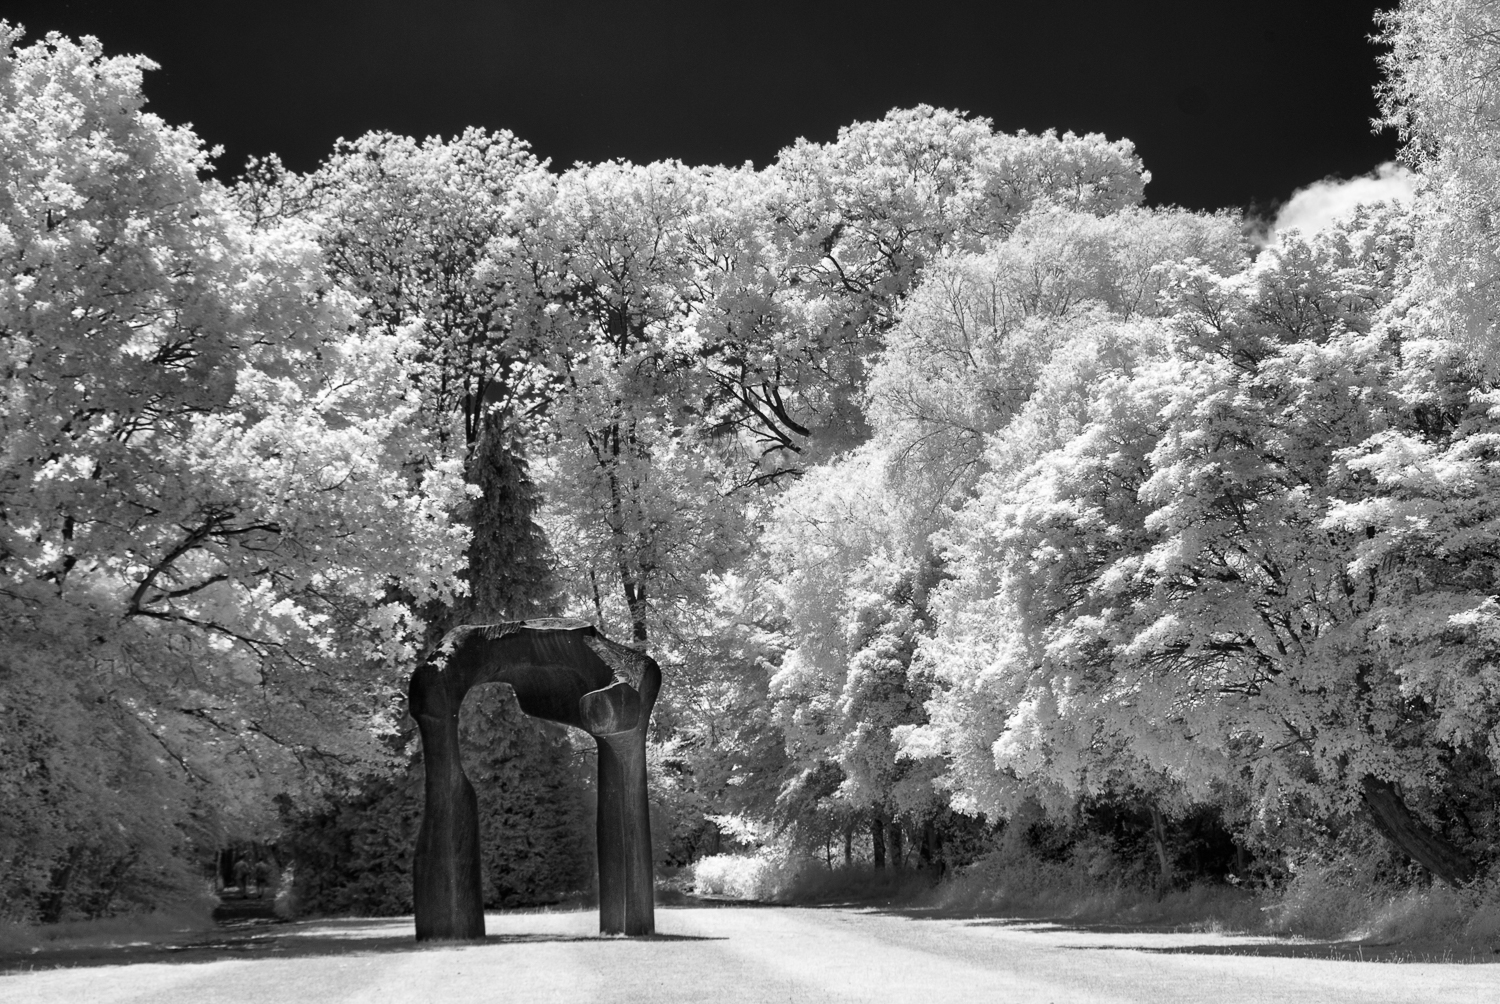 The Arch, Infra-Red